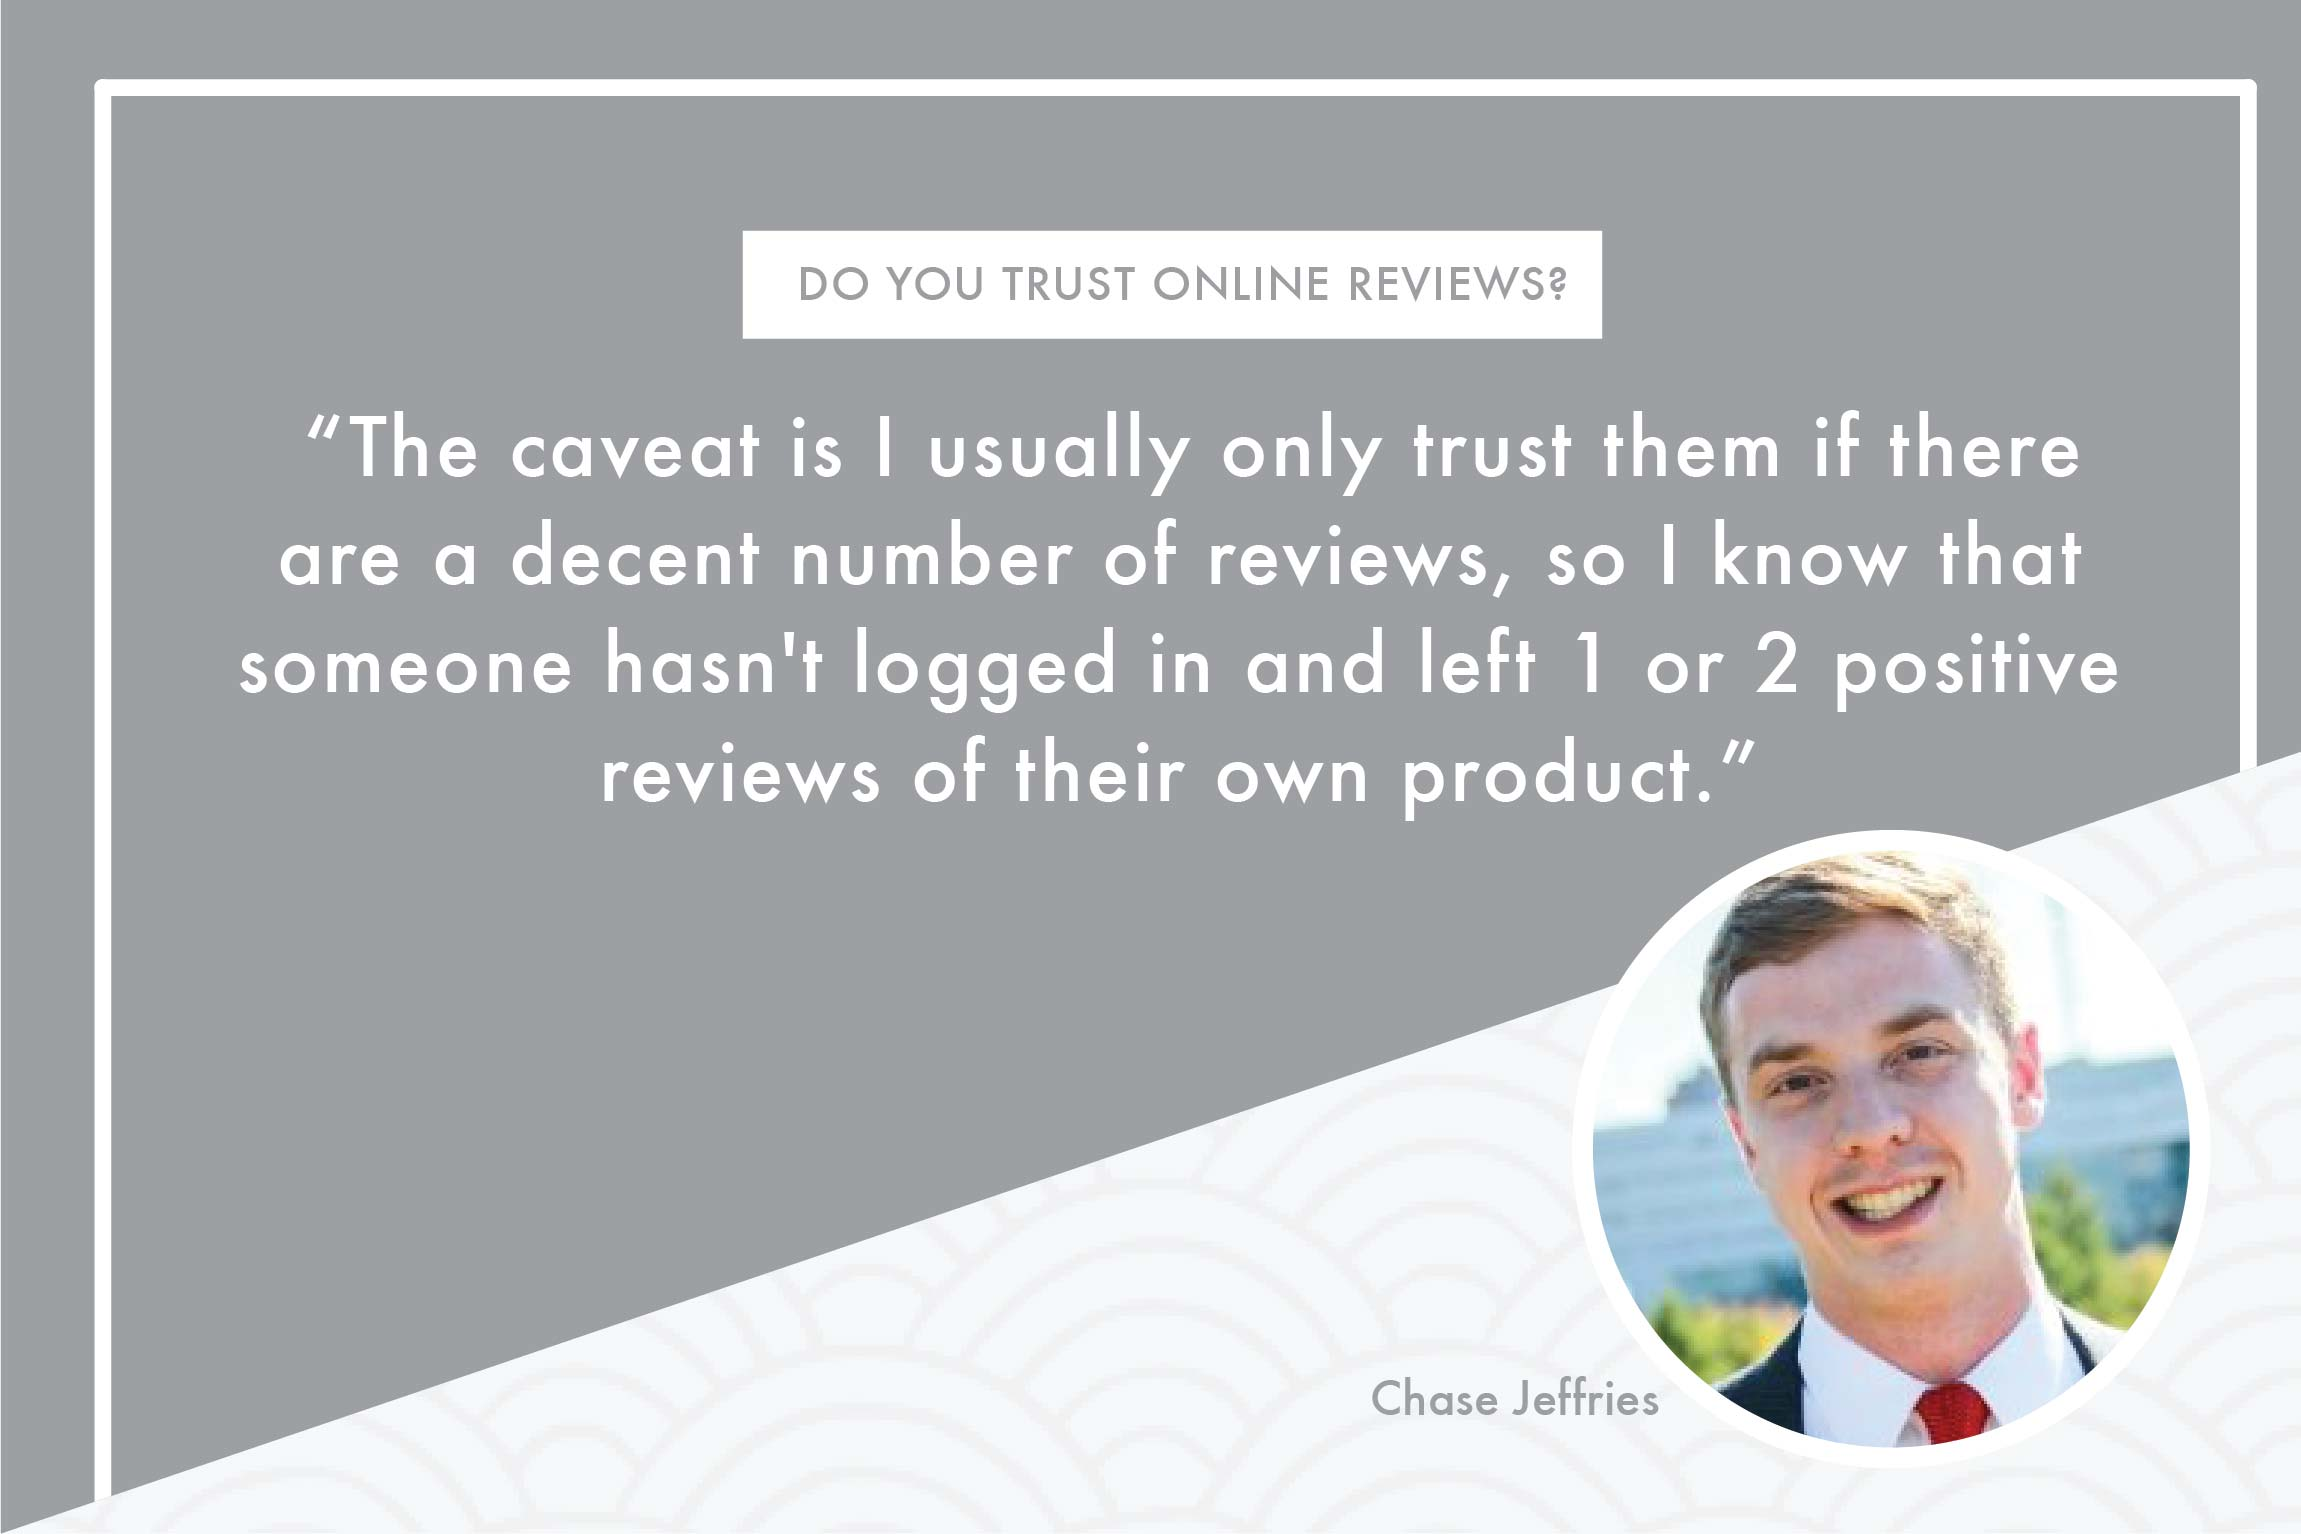 linkedin.com/in/chasejeffries